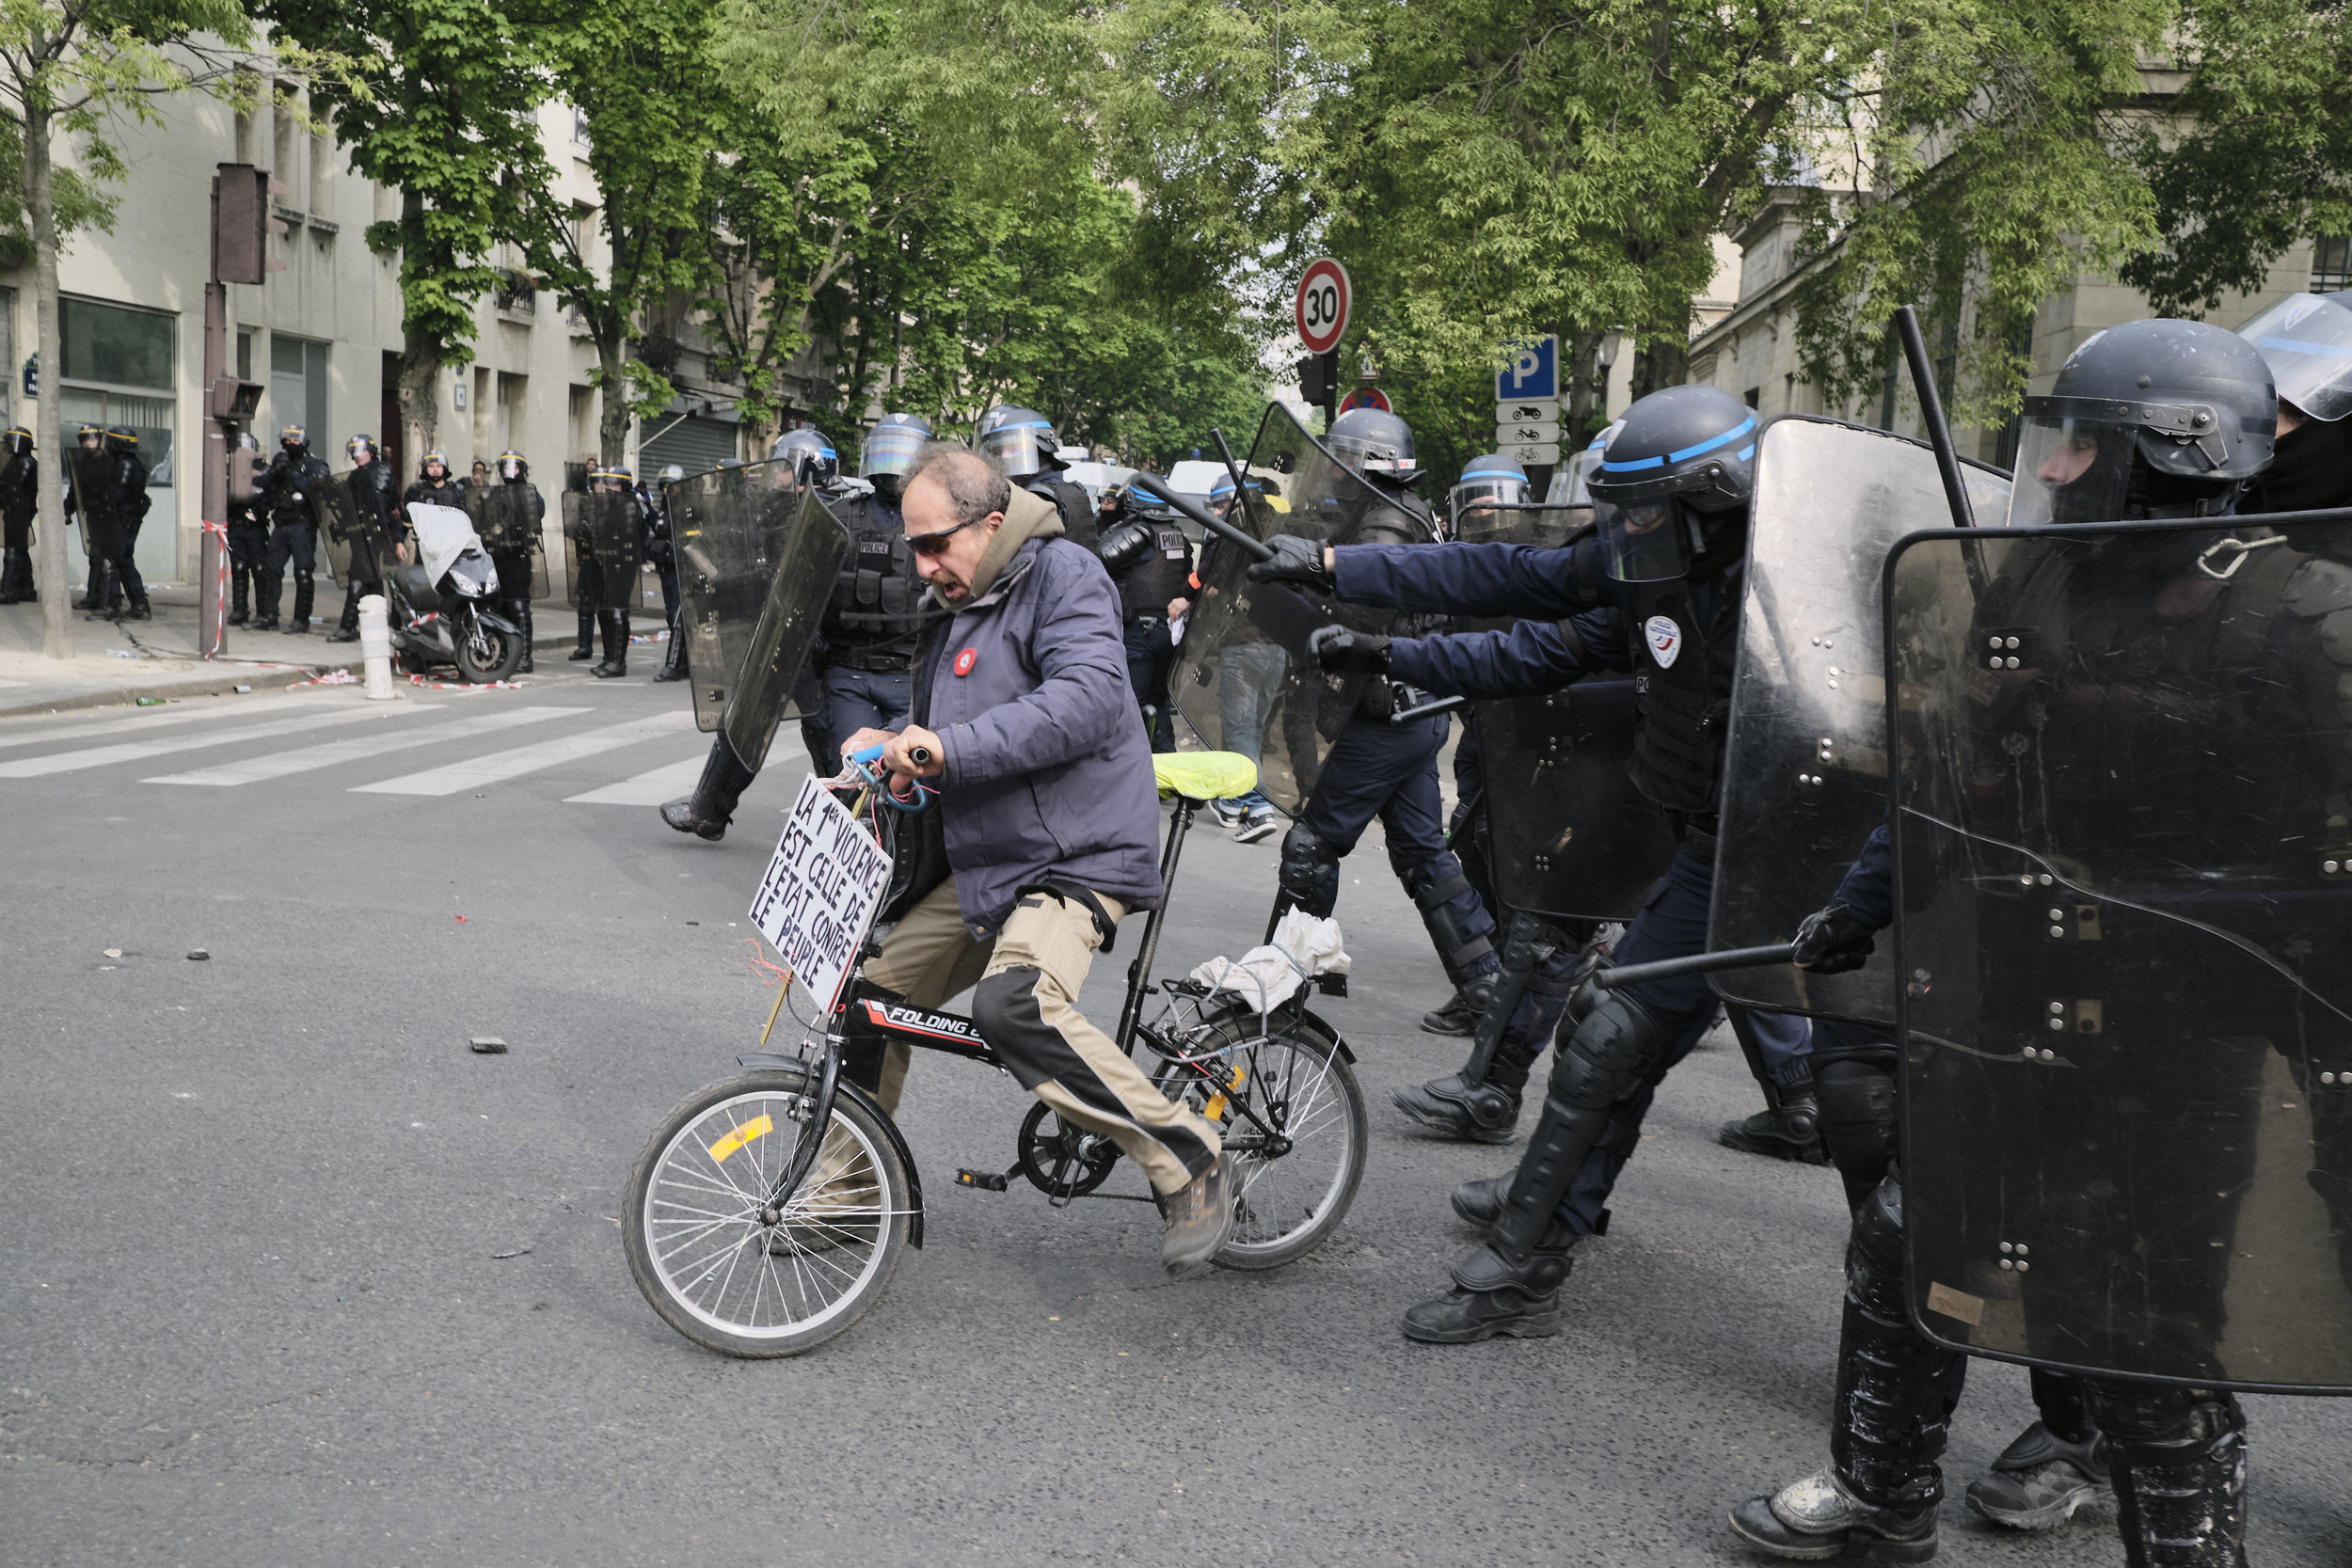 Riot police pushing the protest participant away during a crowd control manoeuvre at The Avenue des Gebelins.